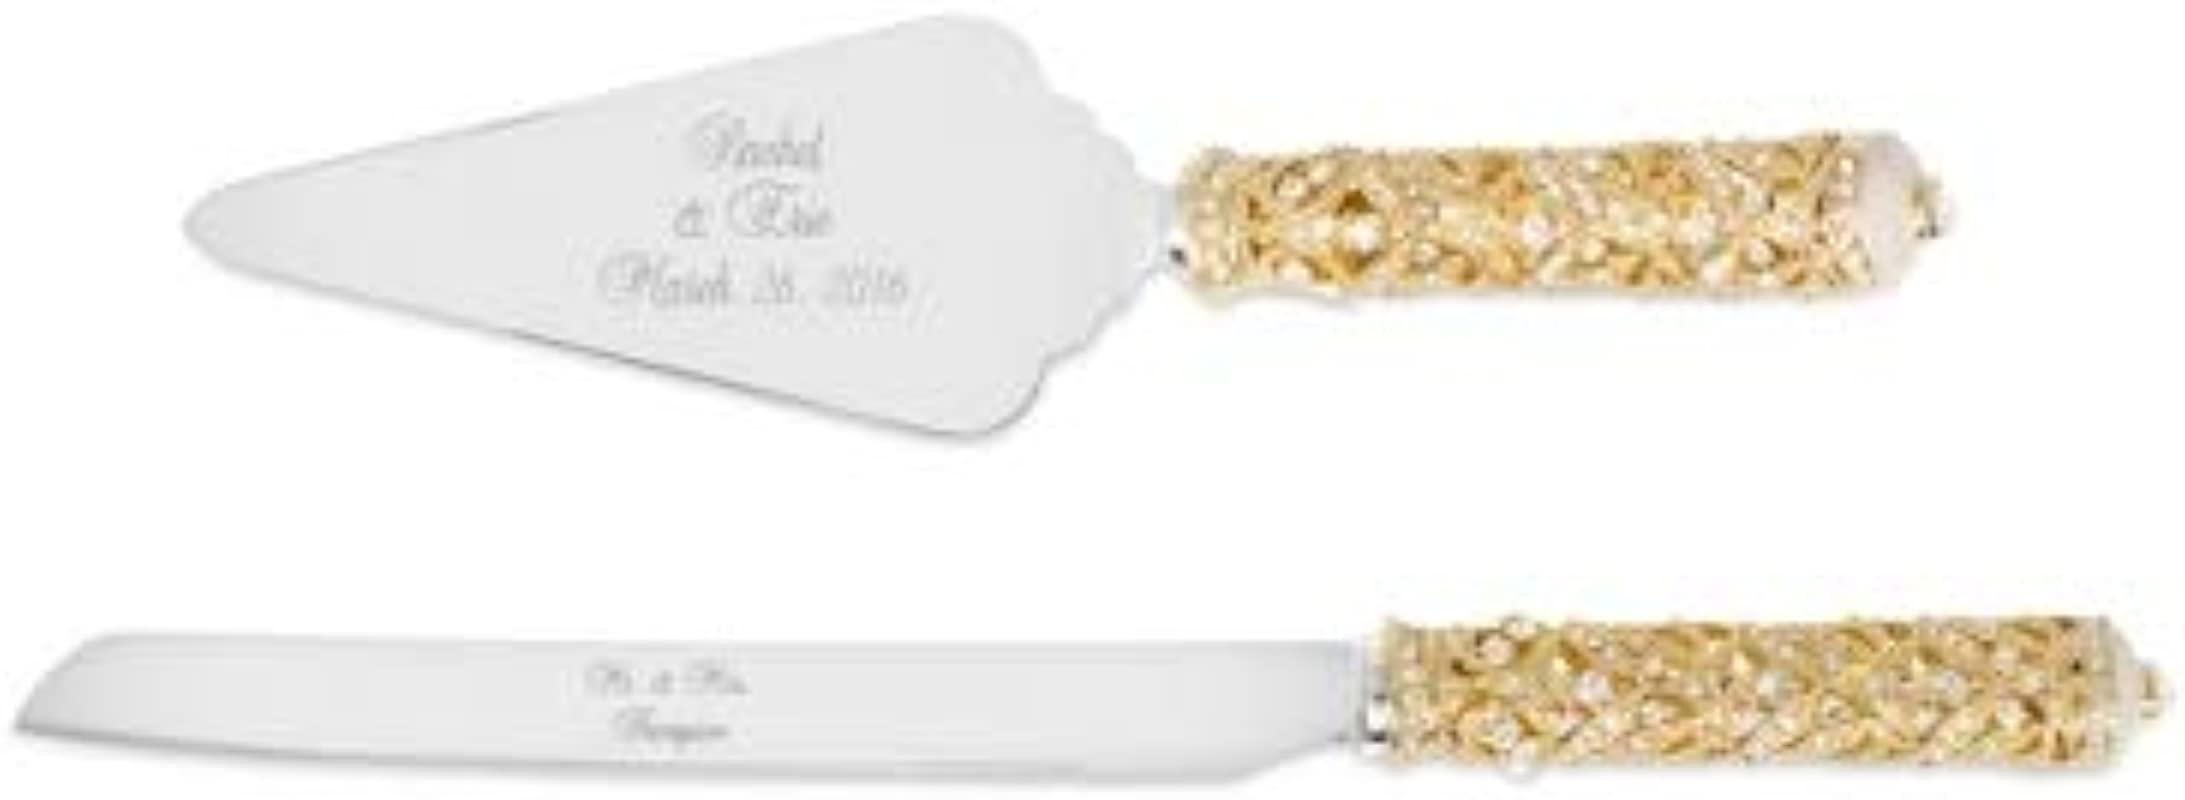 Things Remembered Personalized Gold And Pearl Enamel Crown Cake Server Set With Engraving Included